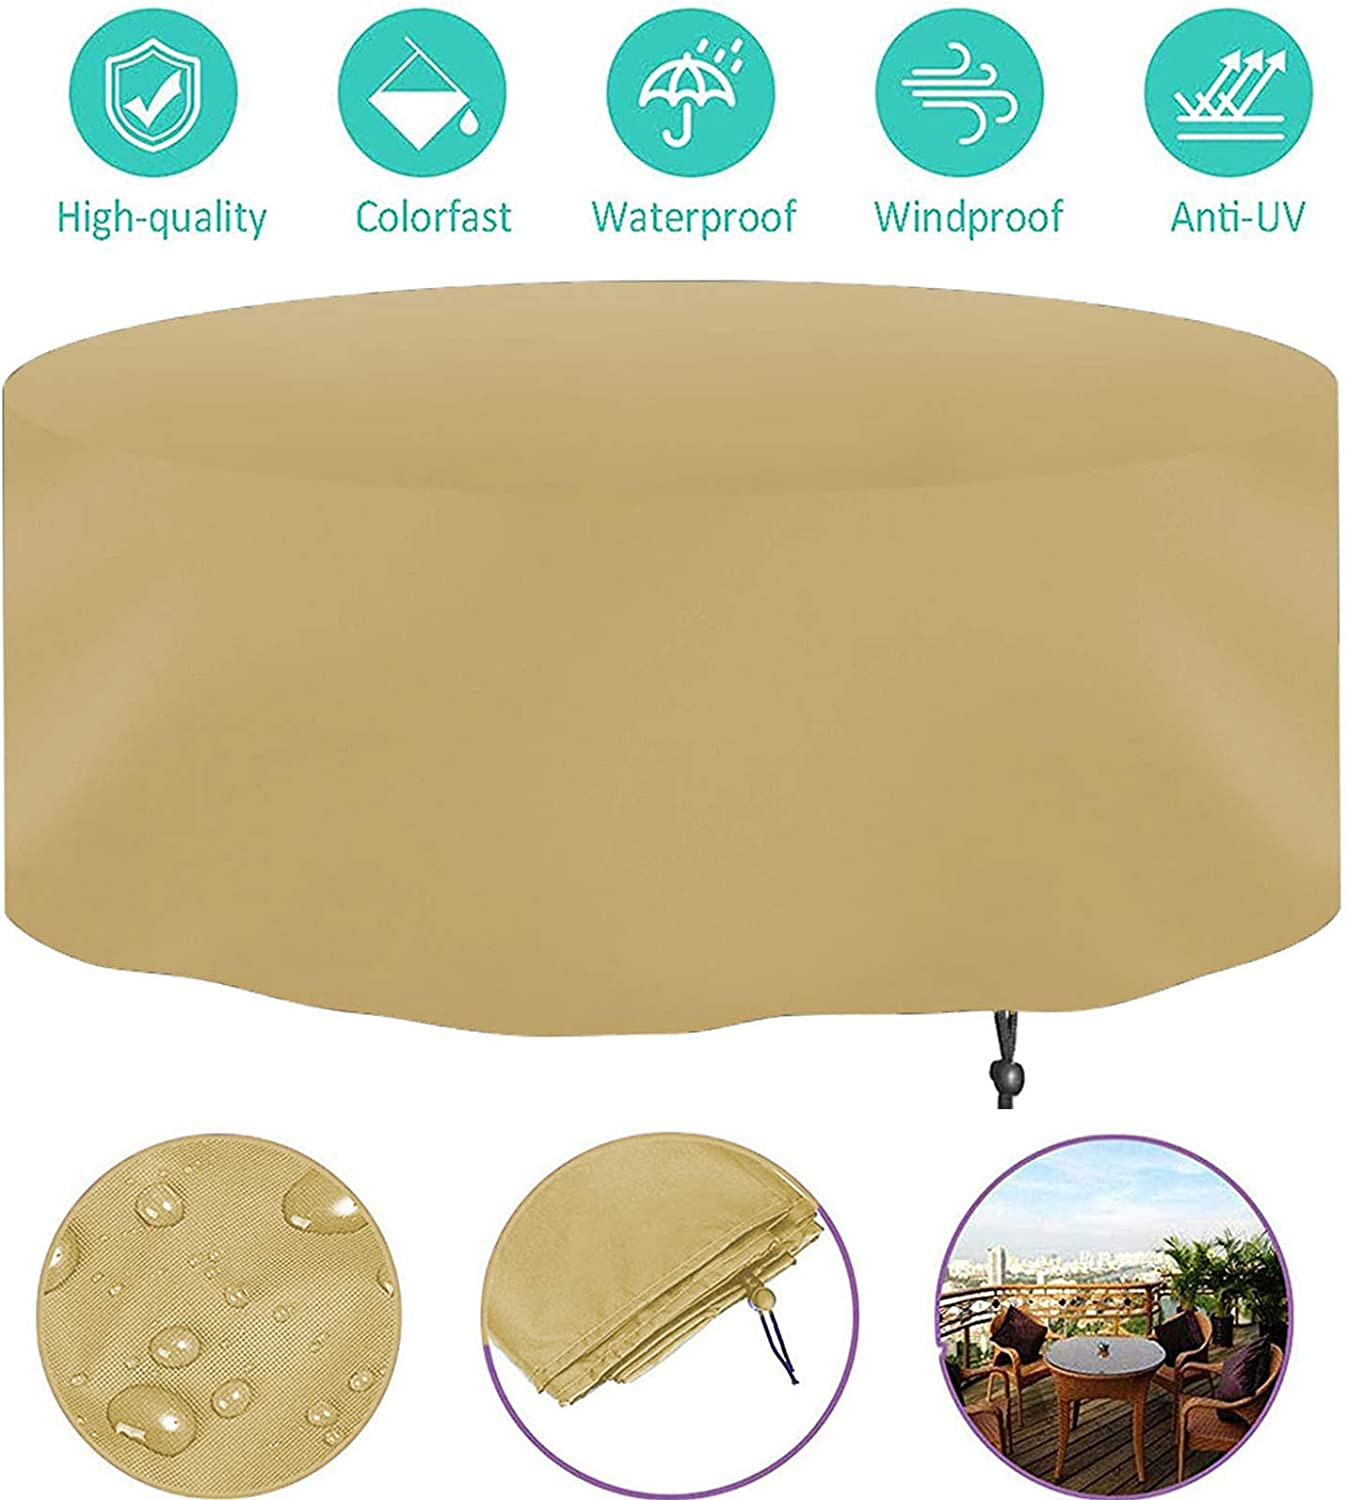 round Patio Table Cover Heavy Duty Oxford Fabric Rattan Furniture Cover,Waterproof Windproof /& Anti-UV Outdoor Garden Cover QAZWSX Garden Furniture Covers